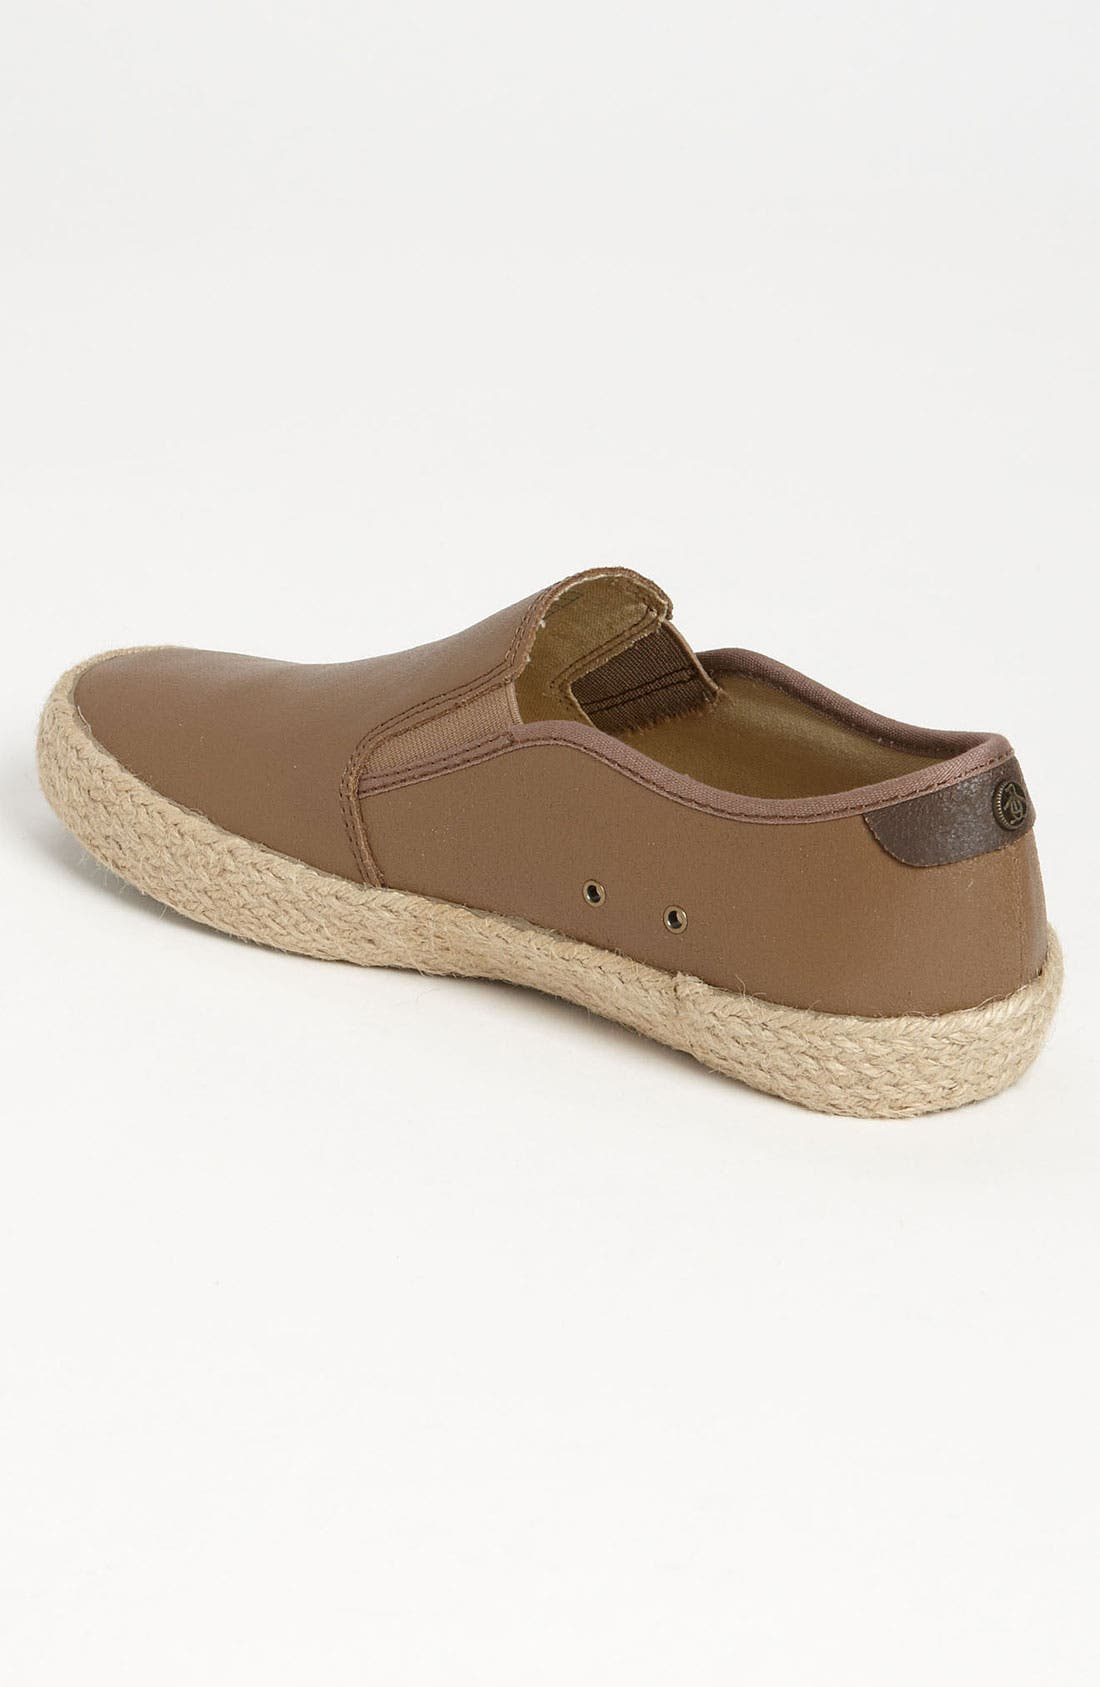 Alternate Image 2  - Original Penguin 'Espy' Espadrille Slip-On